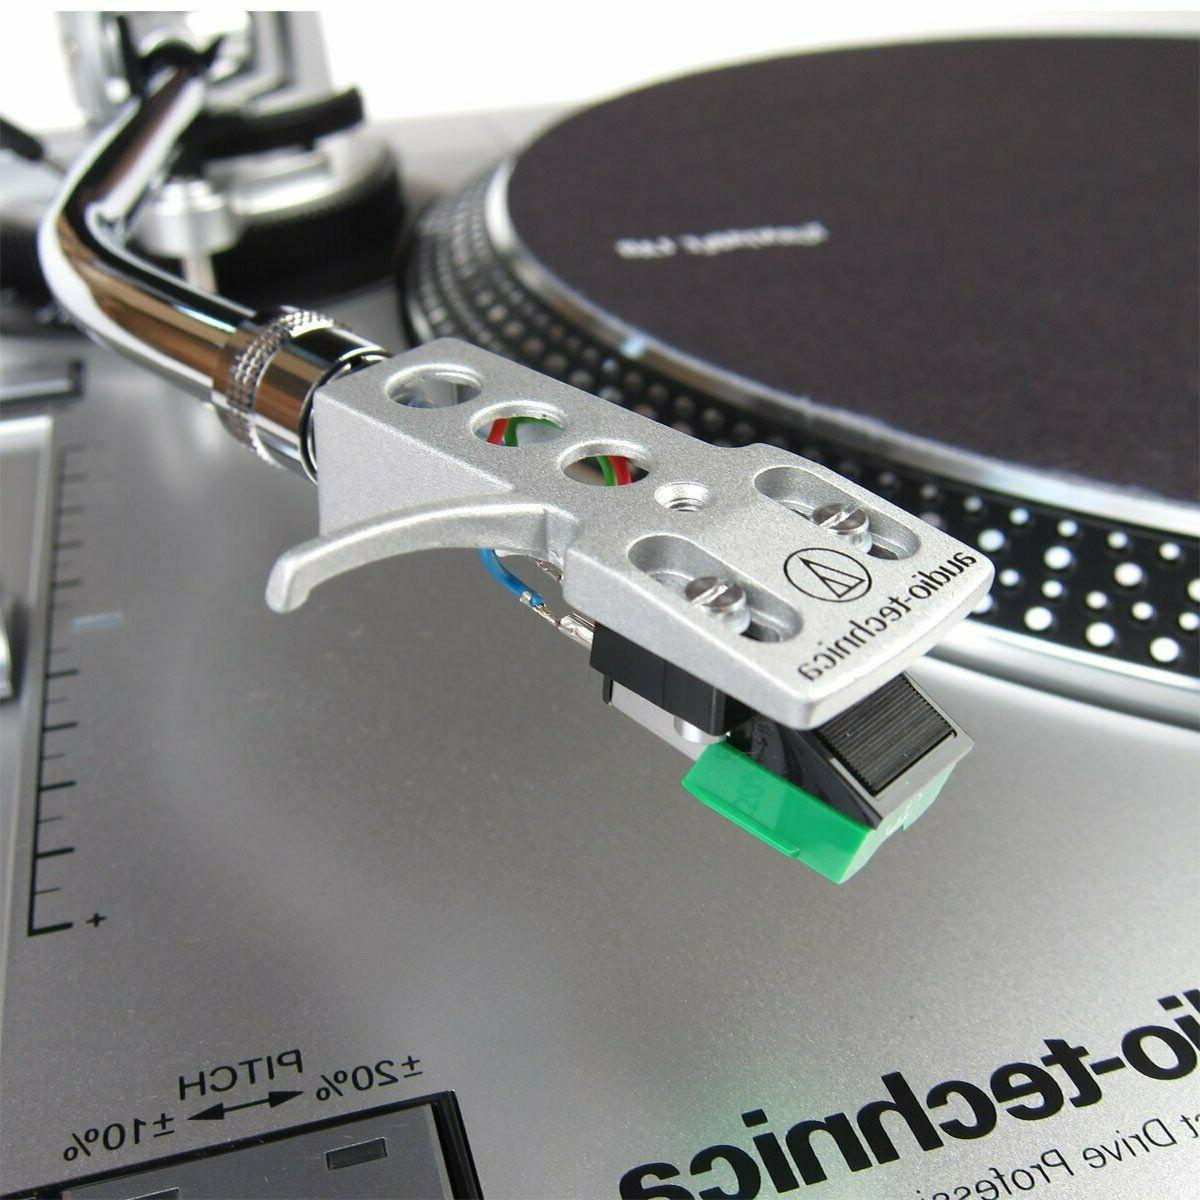 Audio-Technica AT-LP120-USB Pro Stereo Turntable